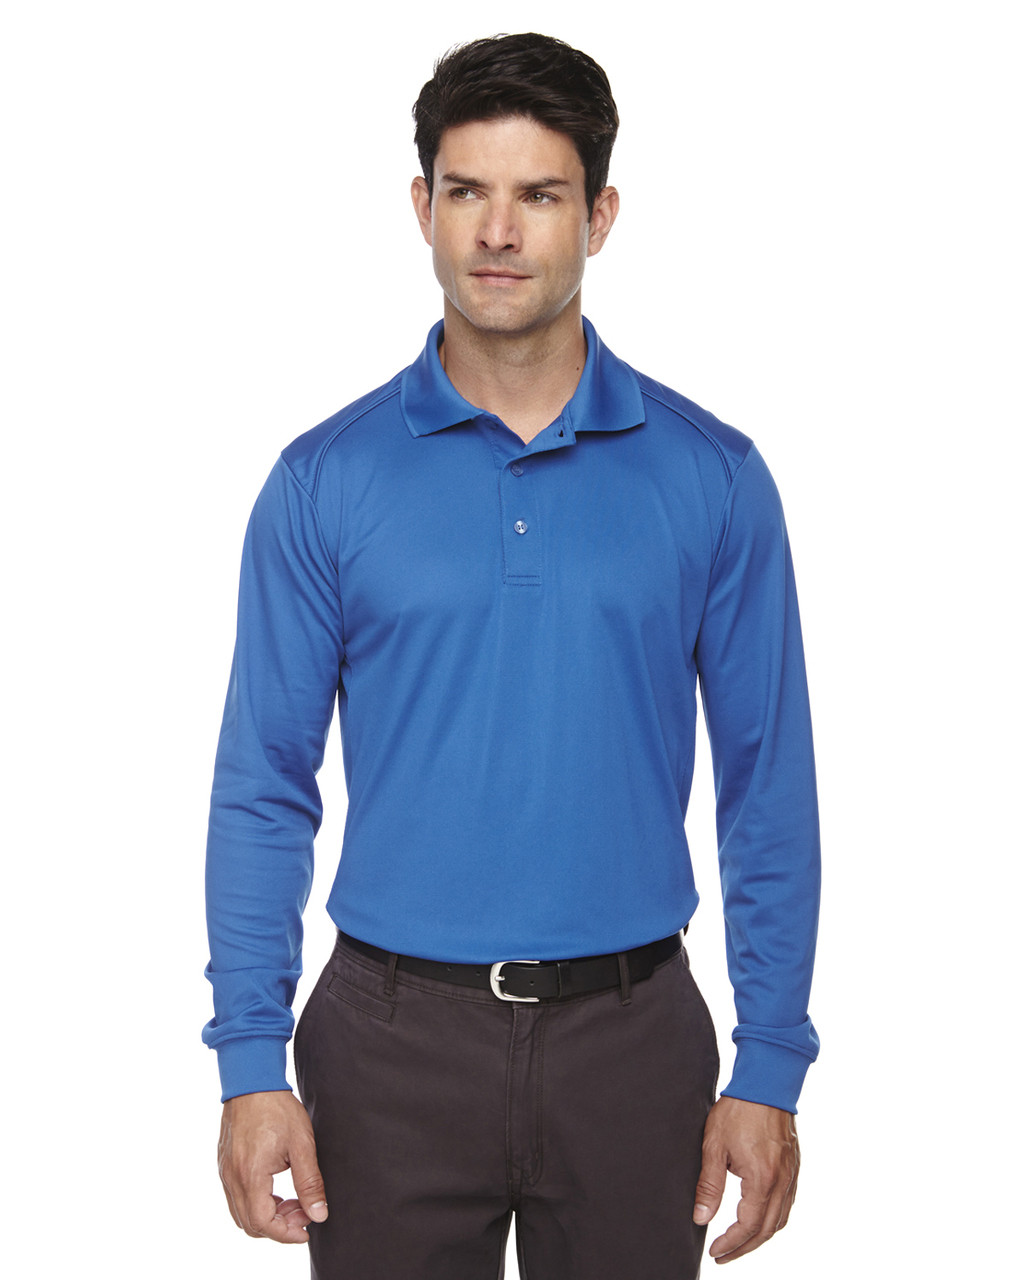 True Royal 85111T Ash City - Extreme Eperformance Men's Tall Long-Sleeve Polo Shirt